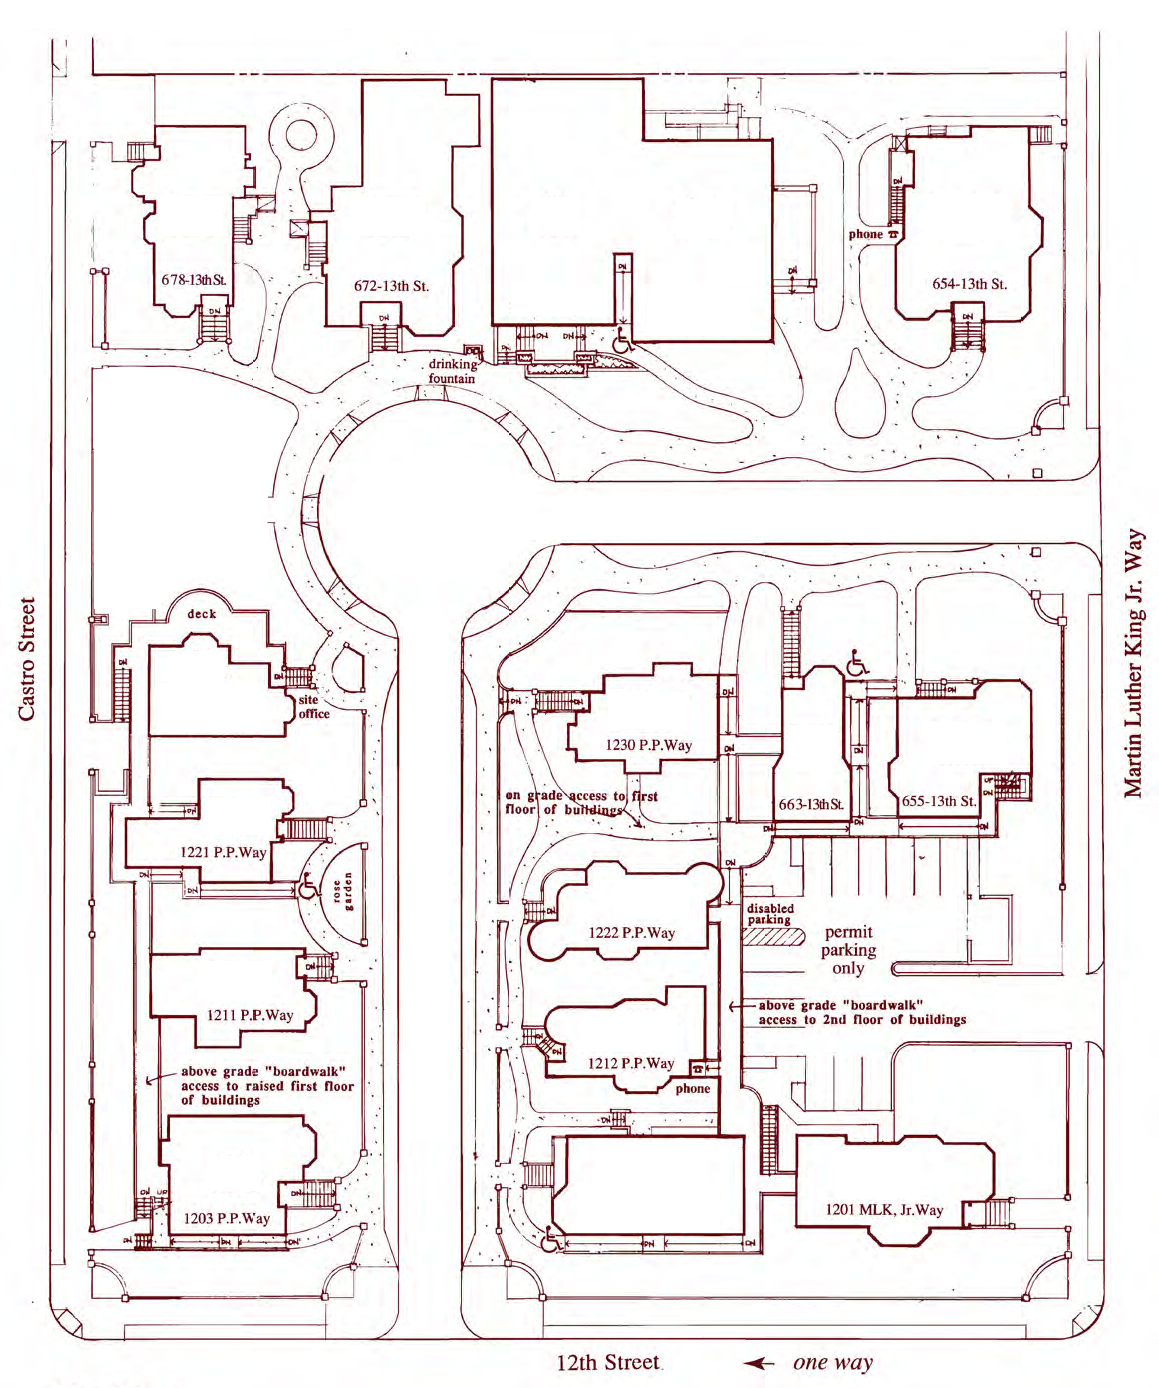 Preservation Park site map